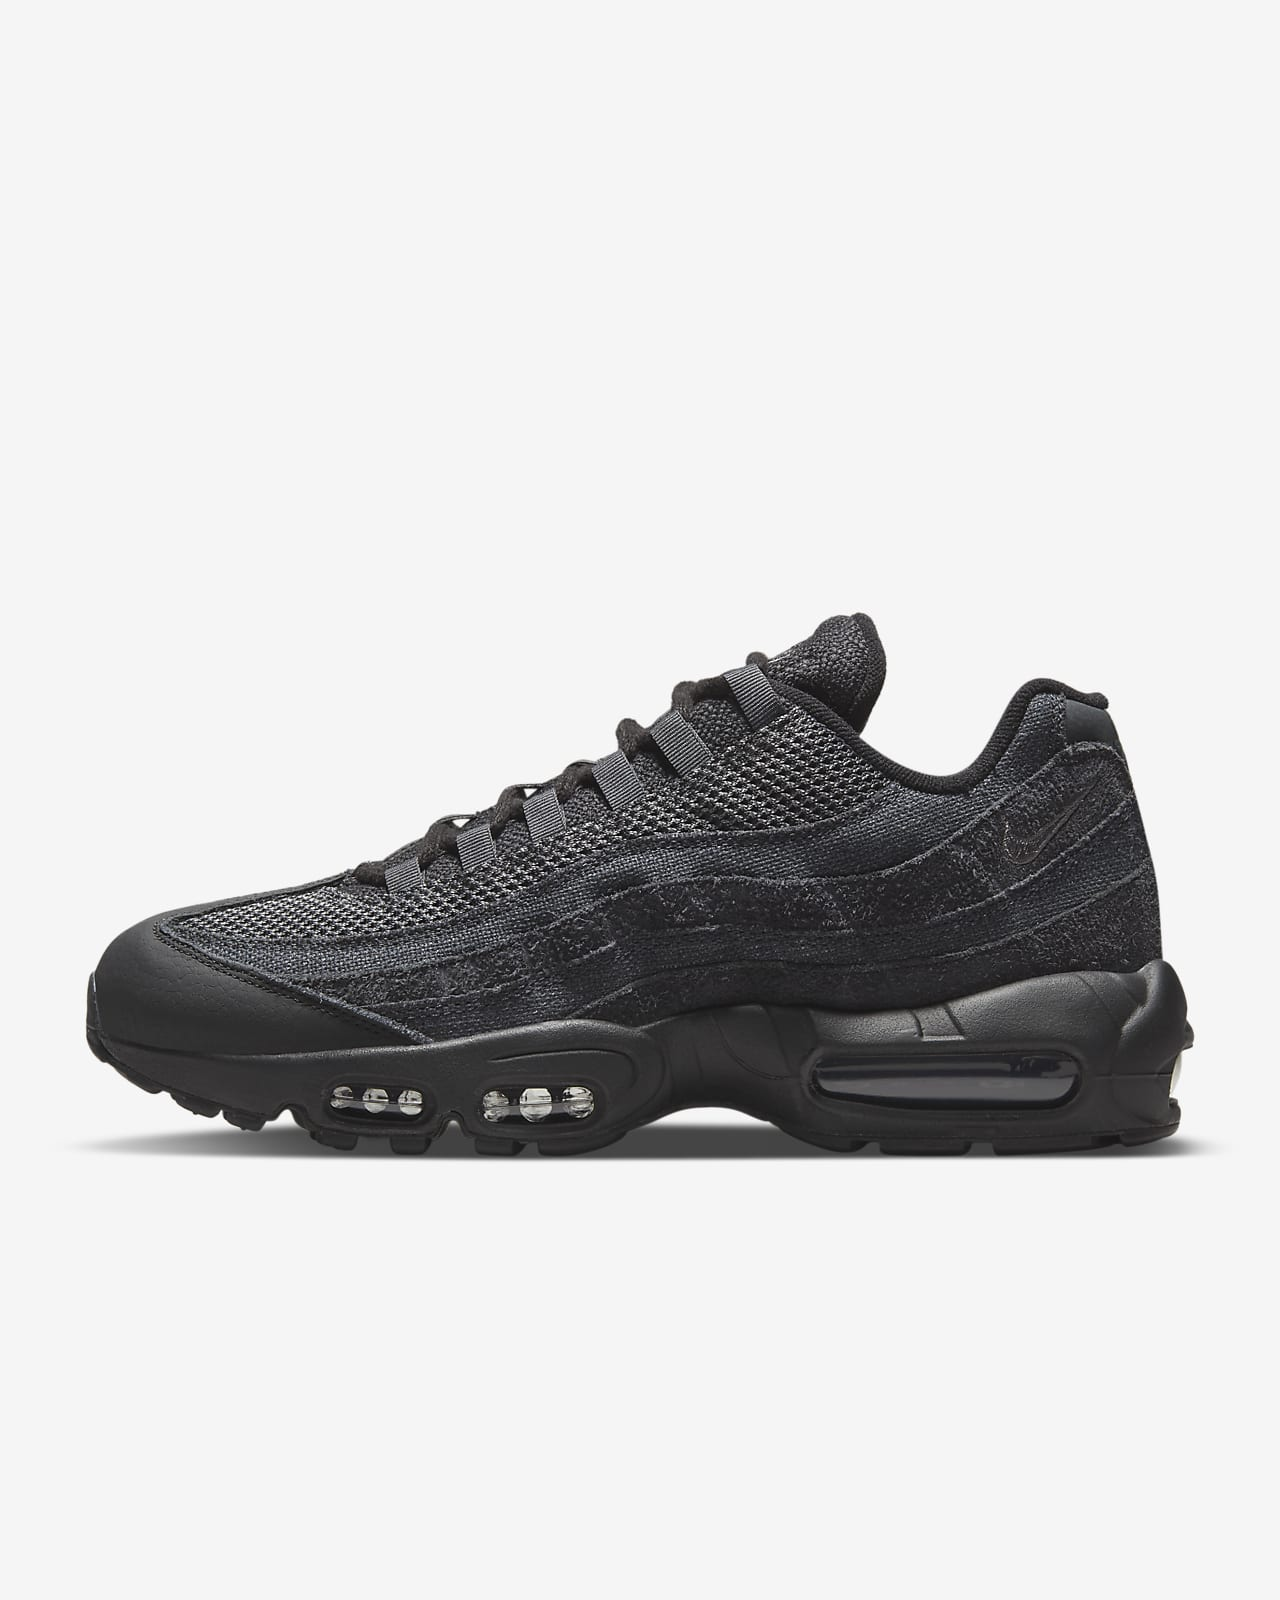 Chaussure Nike Air Max 95 OG pour Homme